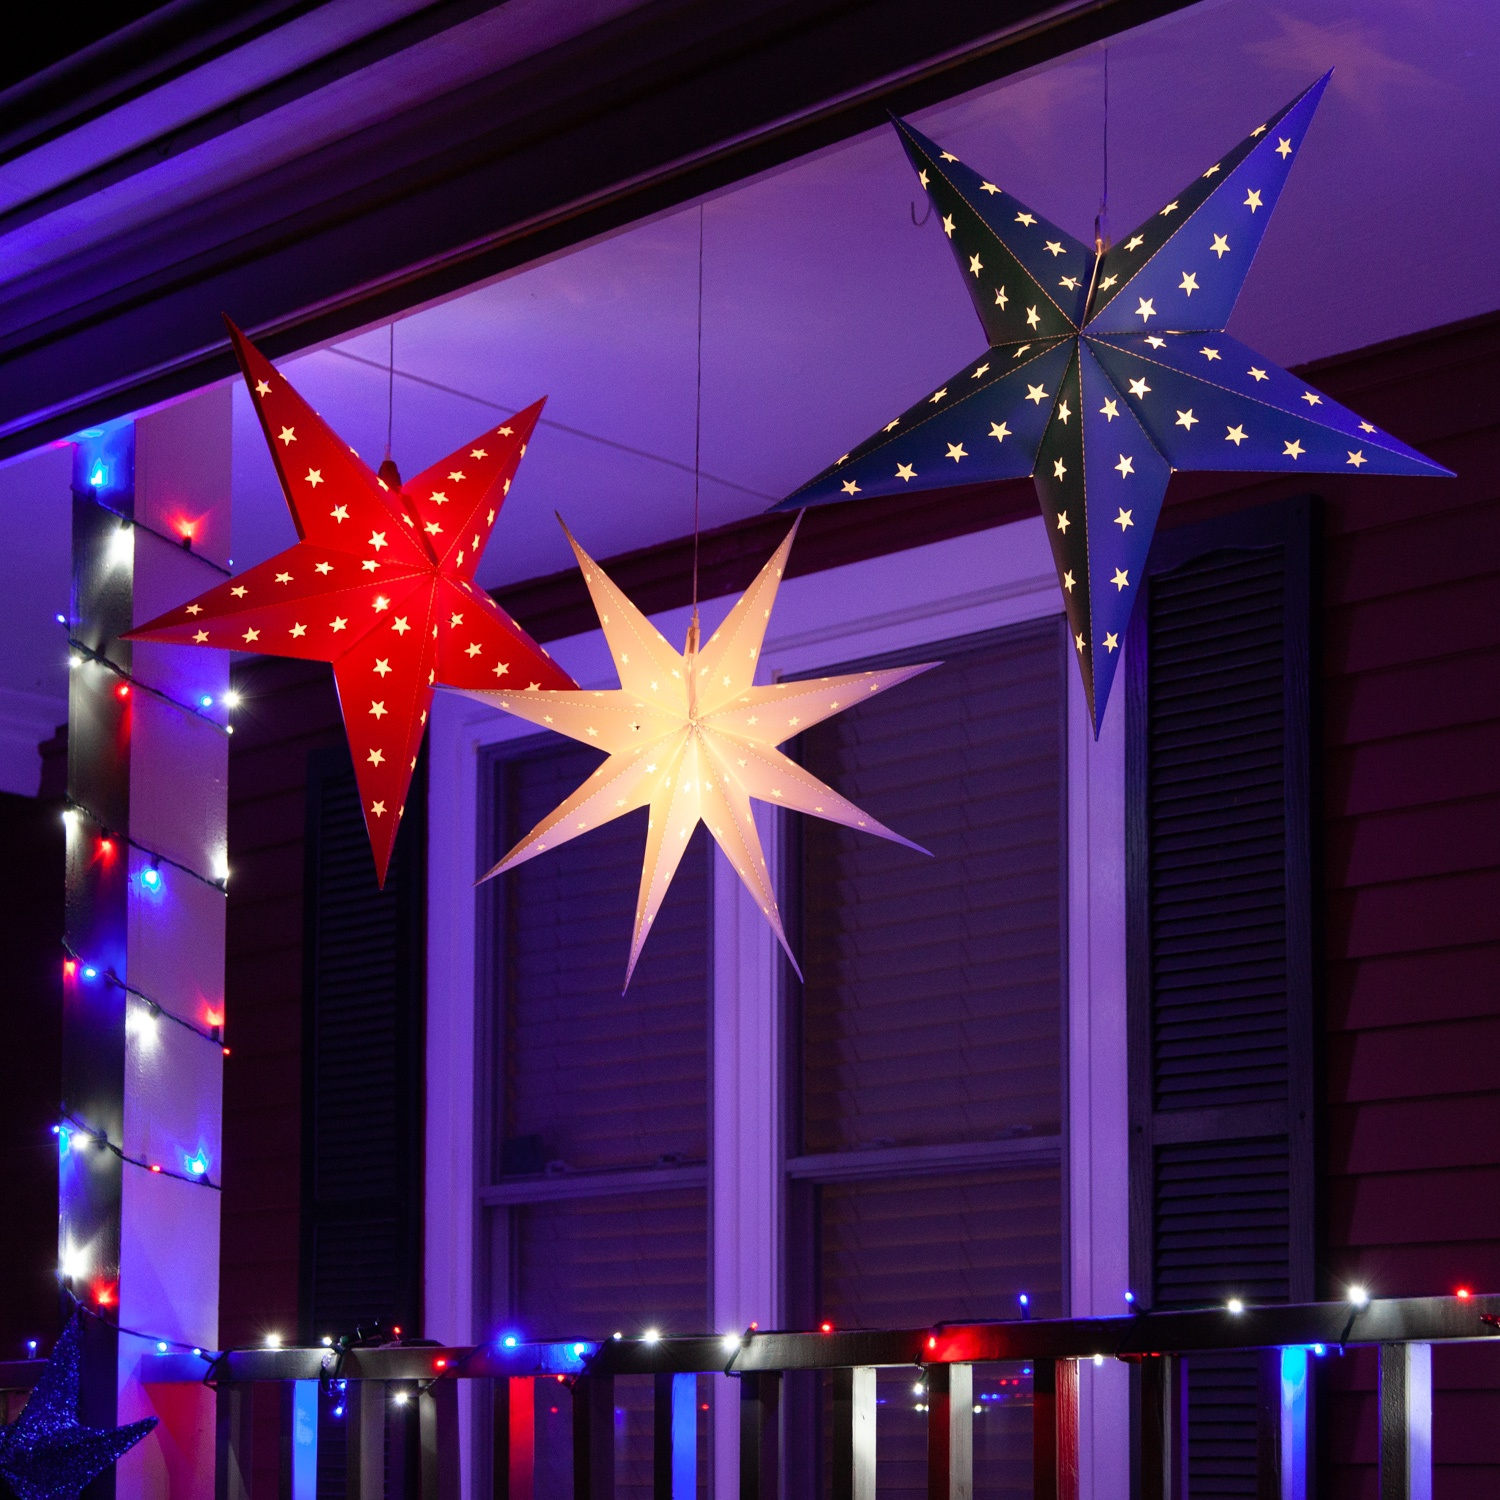 Patriotic Star Porch Decorations